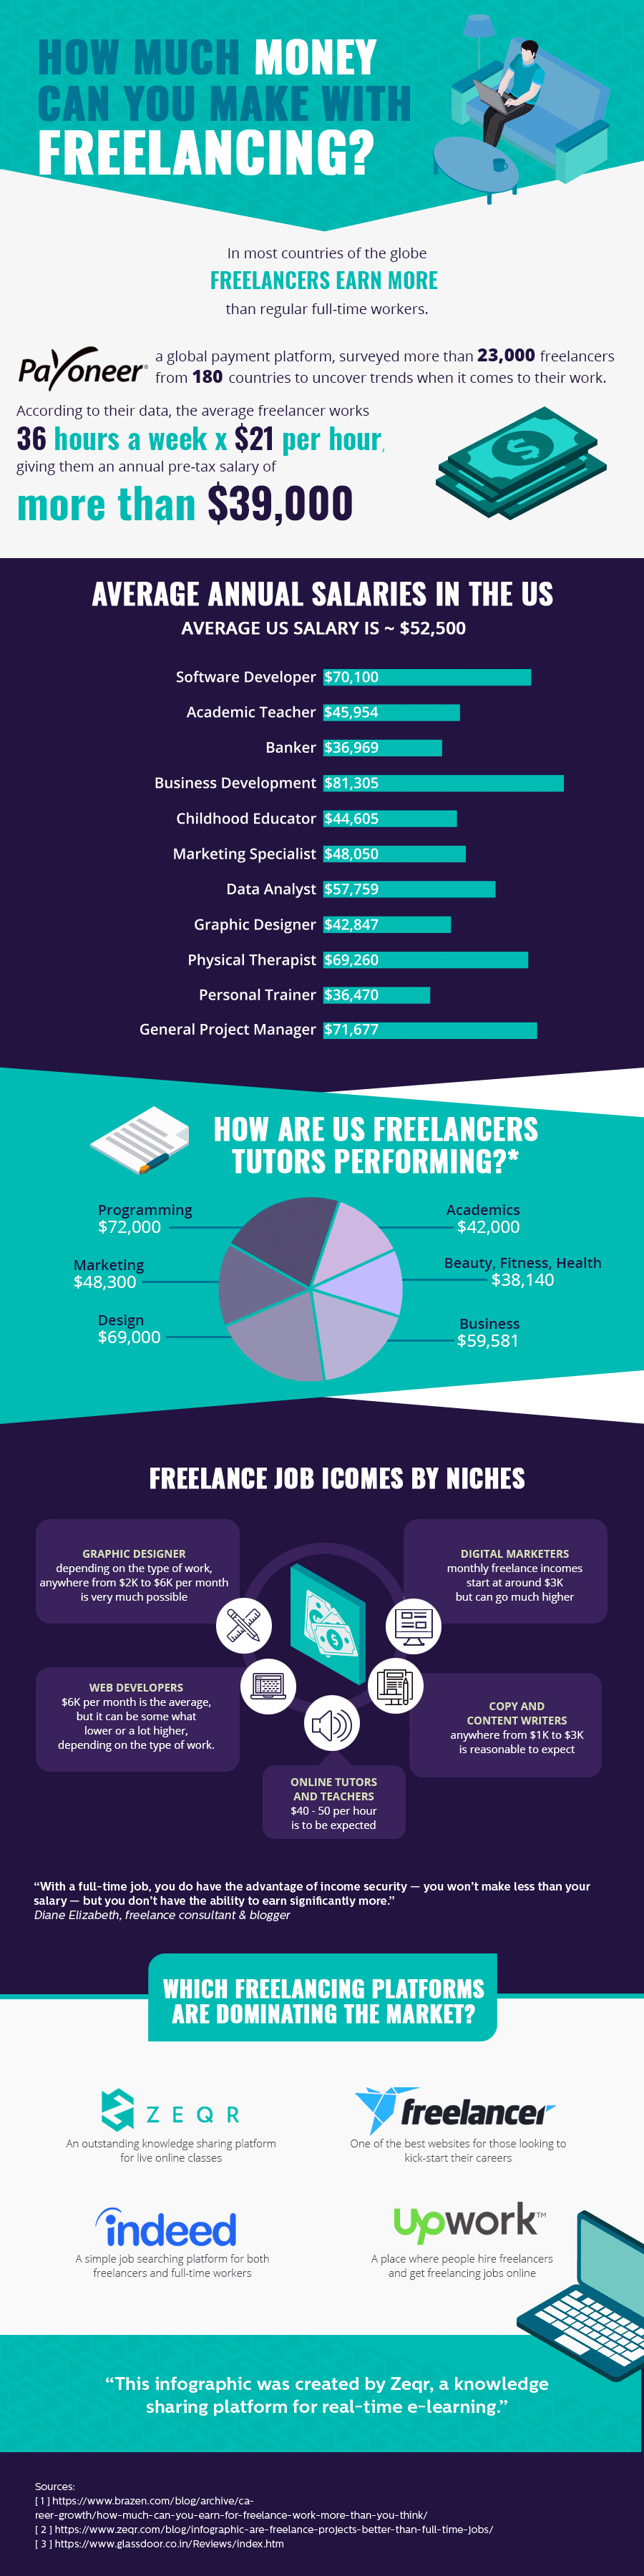 How Much Money Can You Make Freelancing? - #infographic